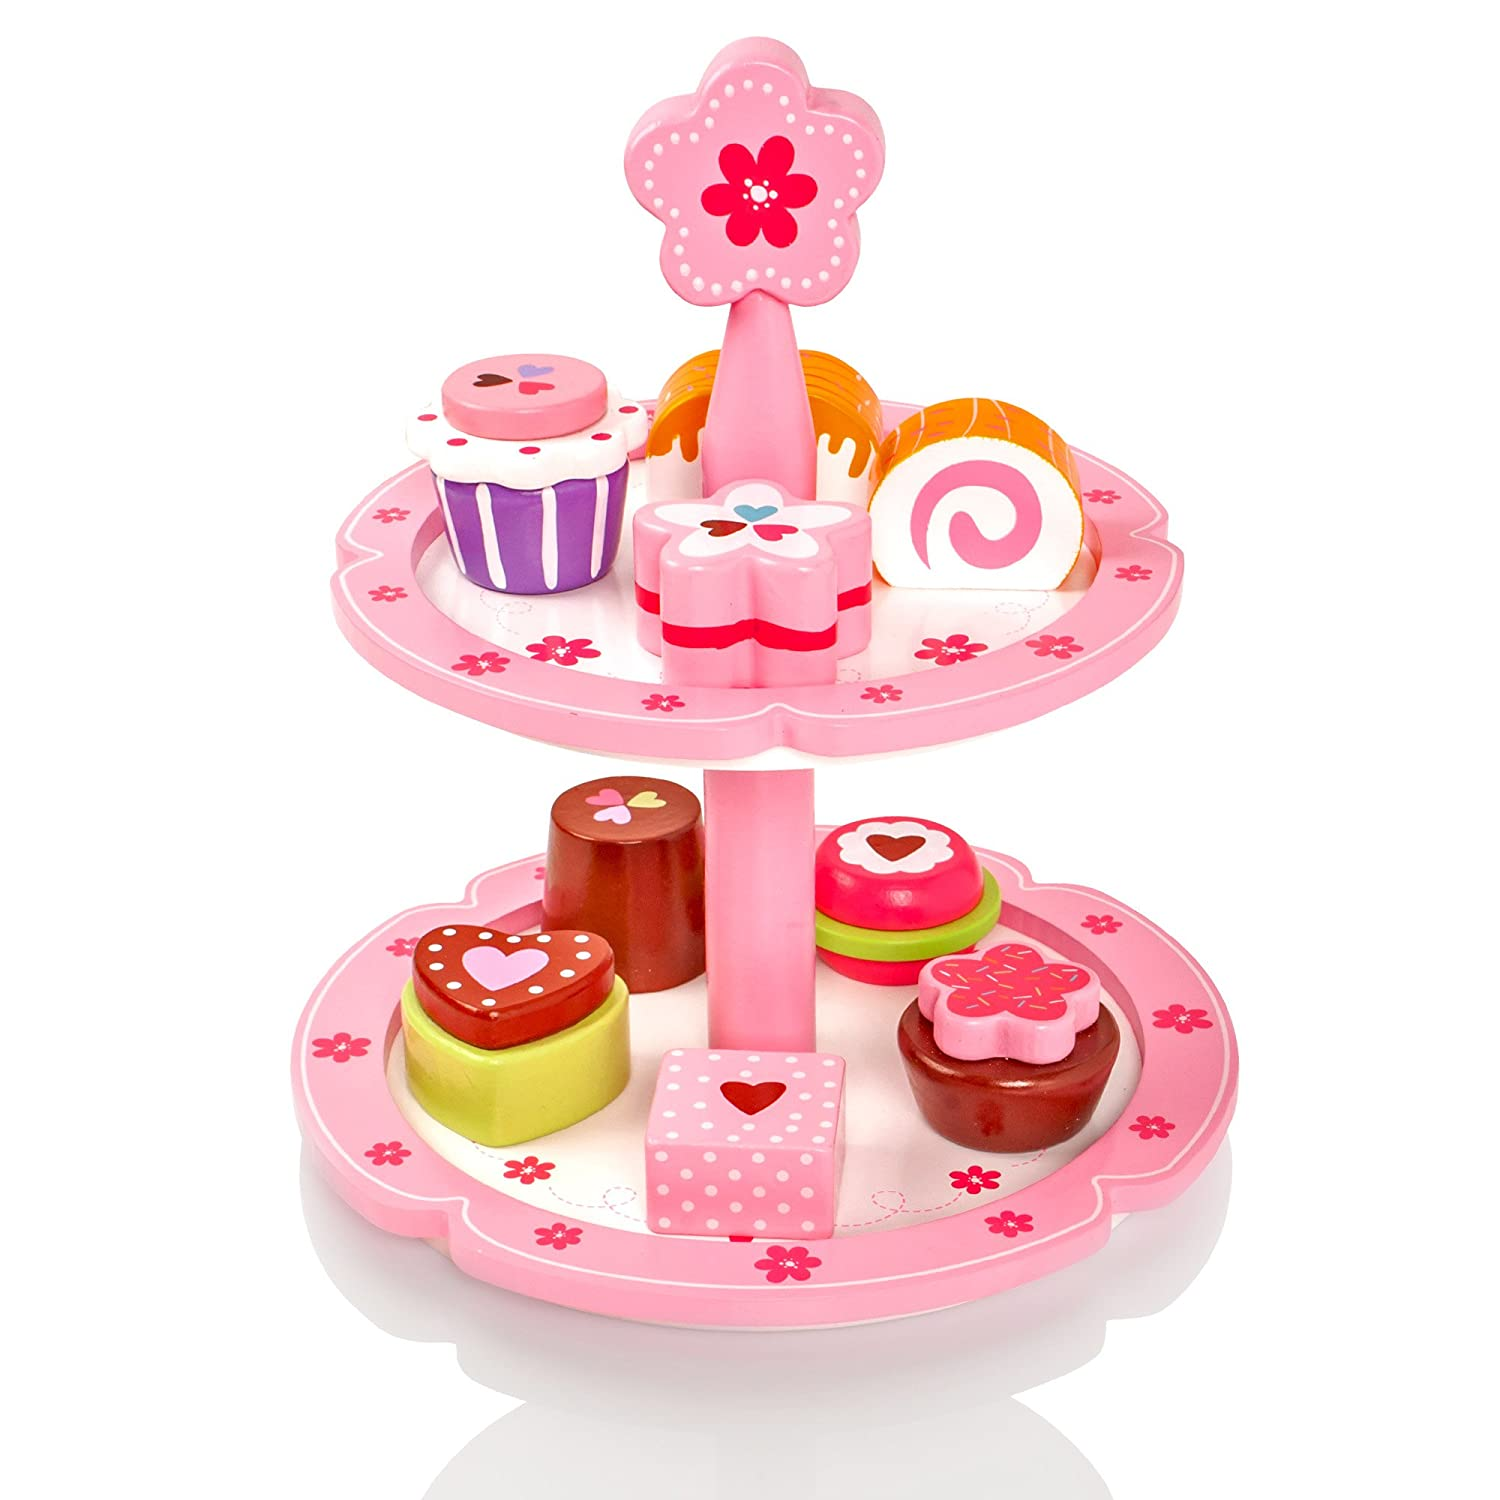 Milly Ted Wooden Cupcake Stand 9 Cakes Set Childrens Wood Playfood Toy Kids Pretend Play Food